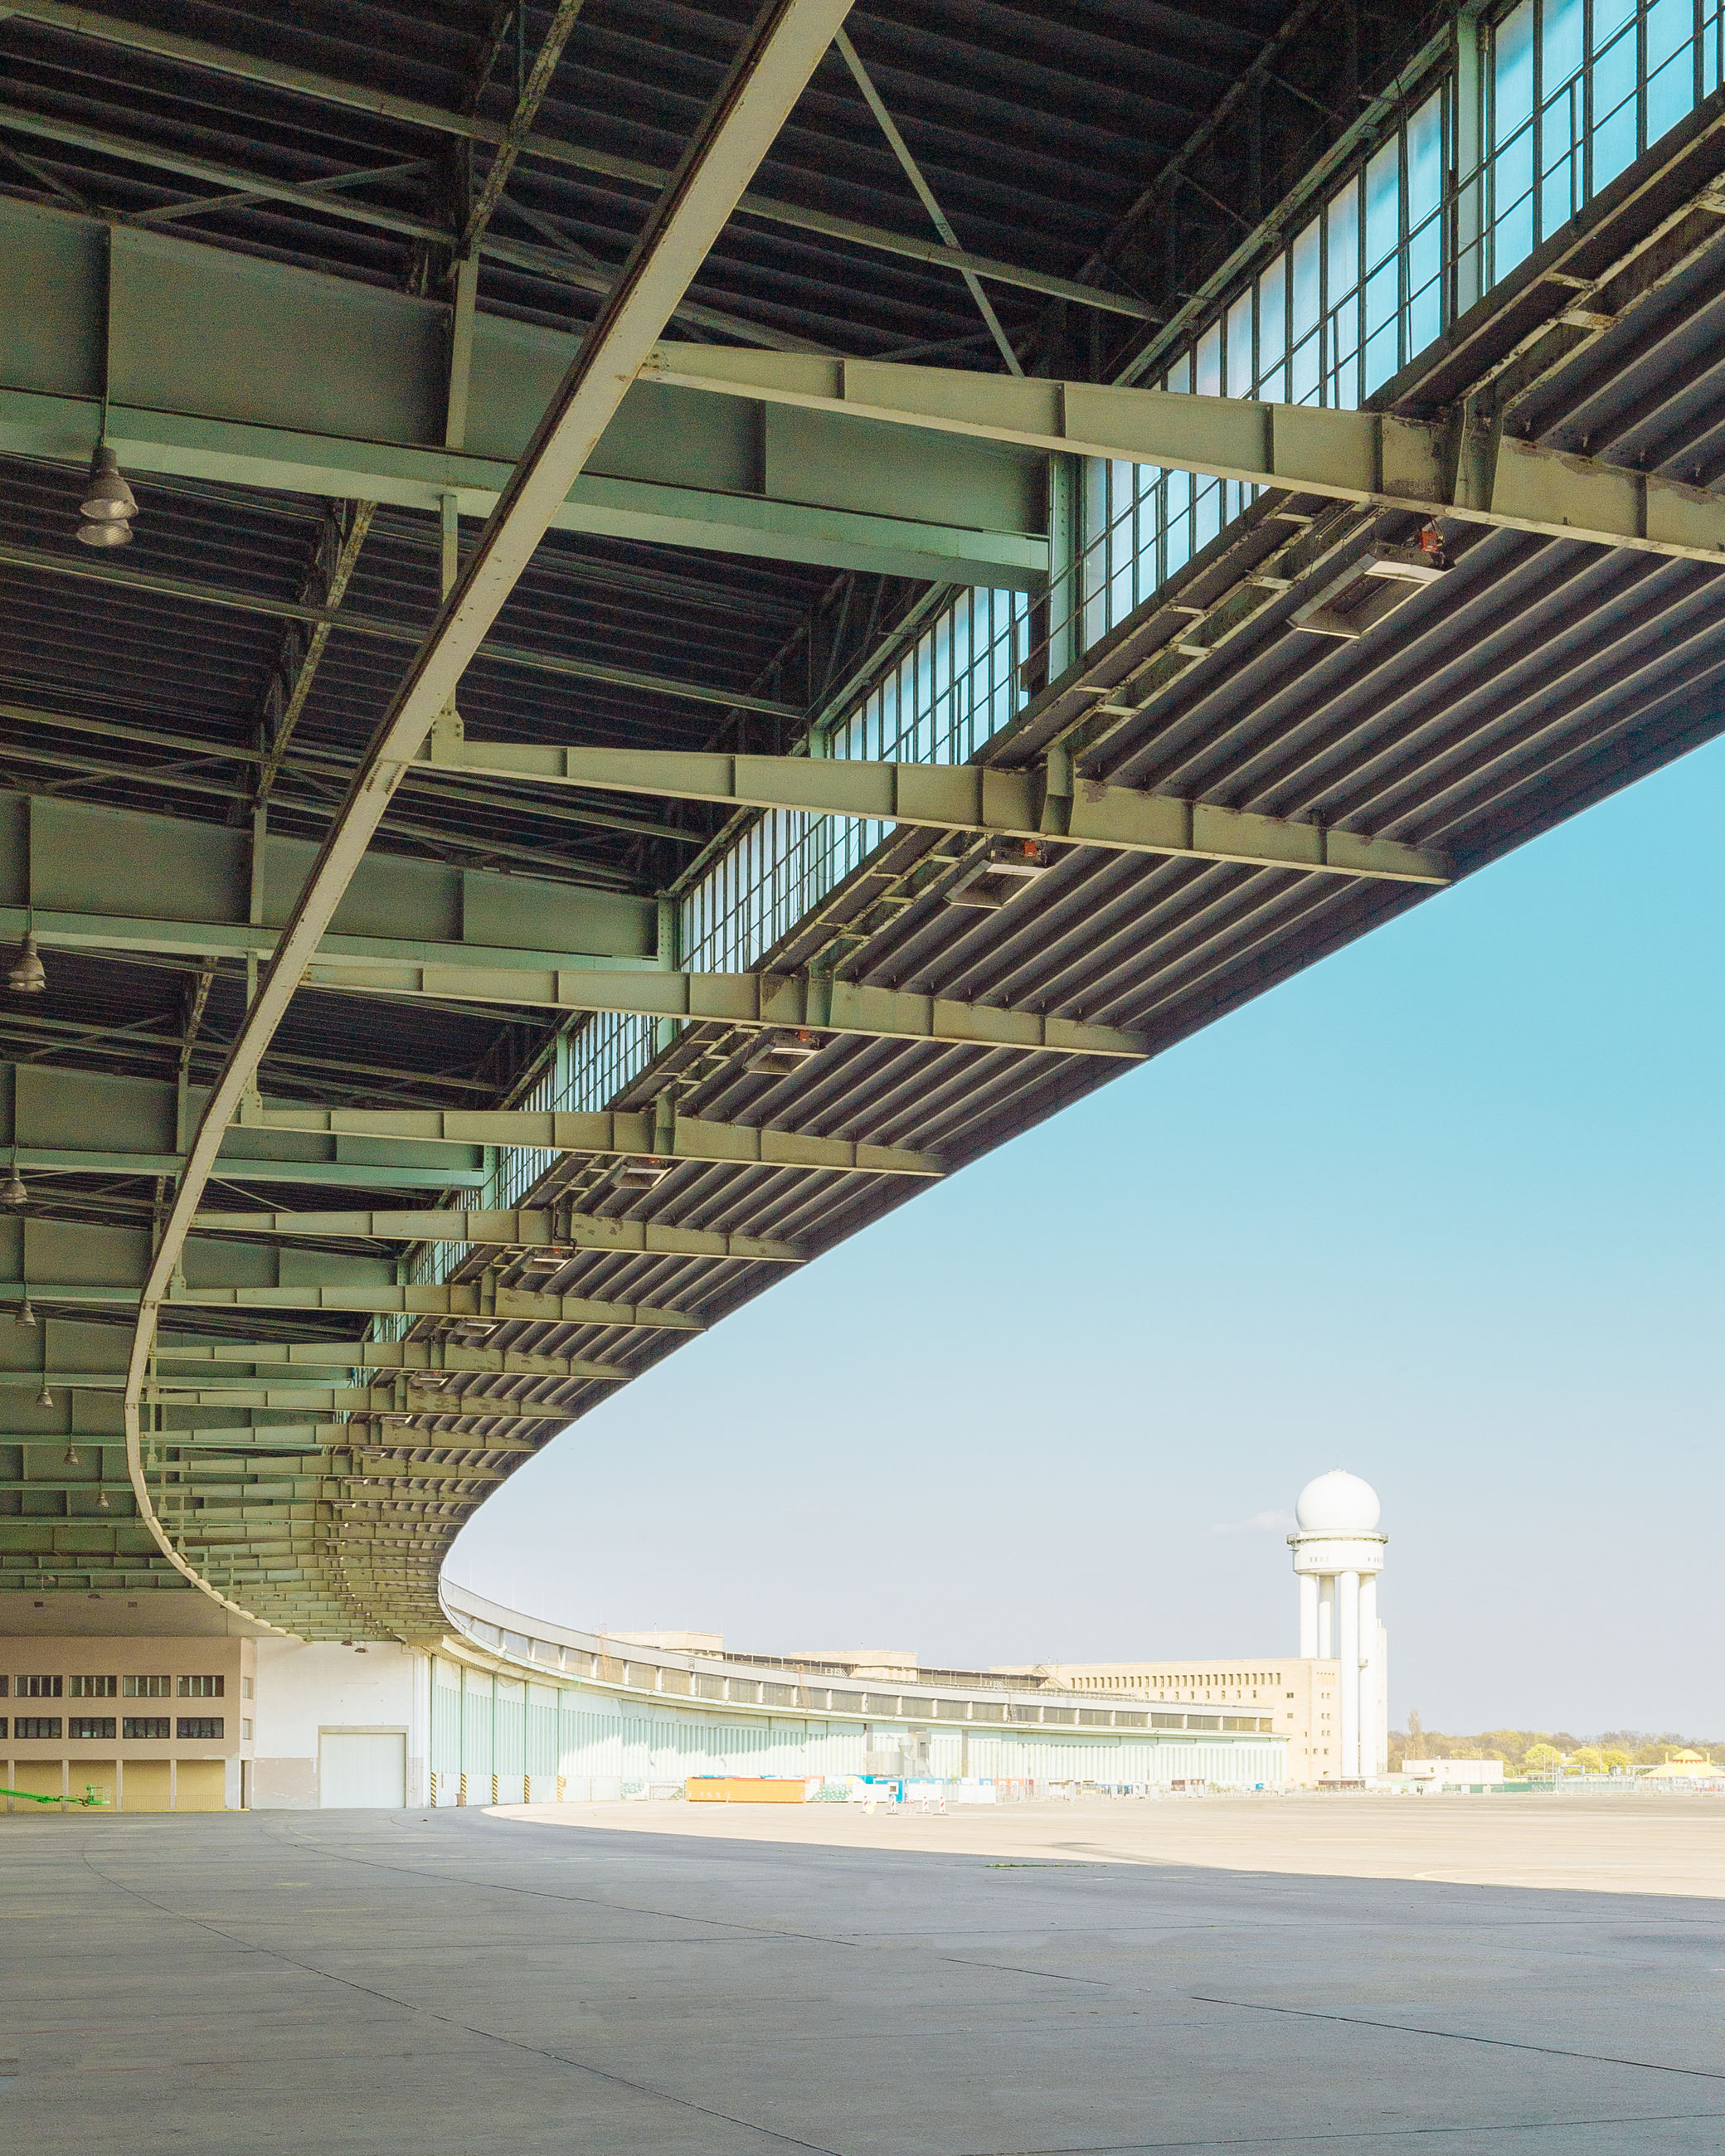 architecture, built structure, day, sky, no people, nature, bridge, building exterior, connection, architectural column, building, low angle view, transportation, bridge - man made structure, sunlight, outdoors, clear sky, ceiling, city, staircase